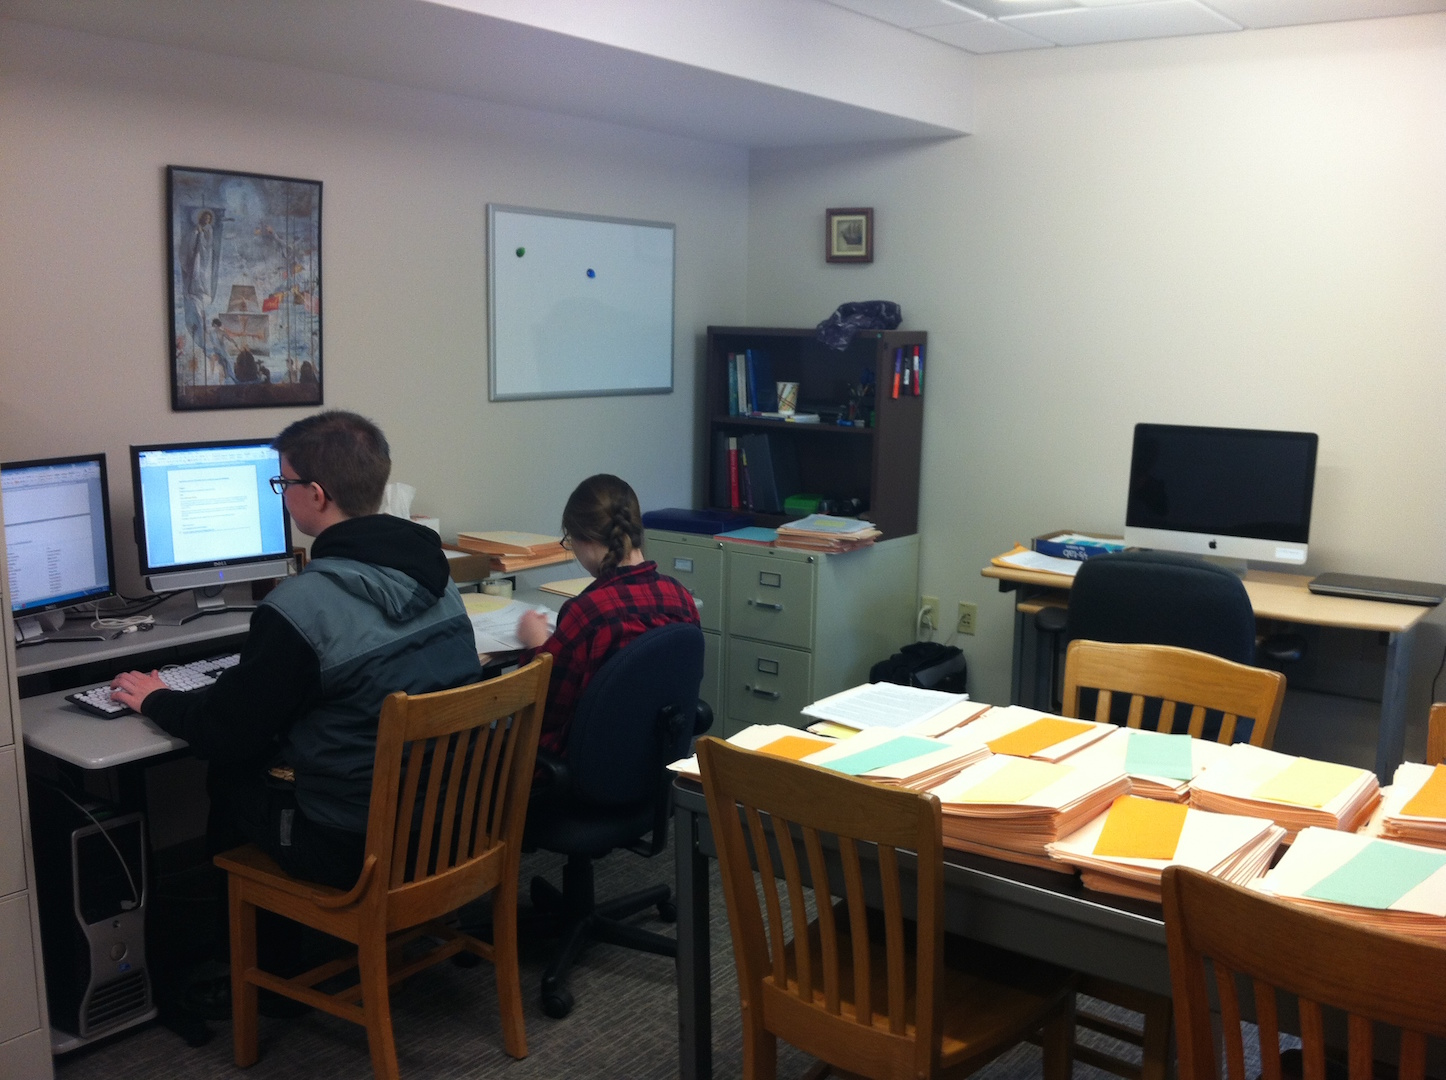 Research Assistants busy at work.